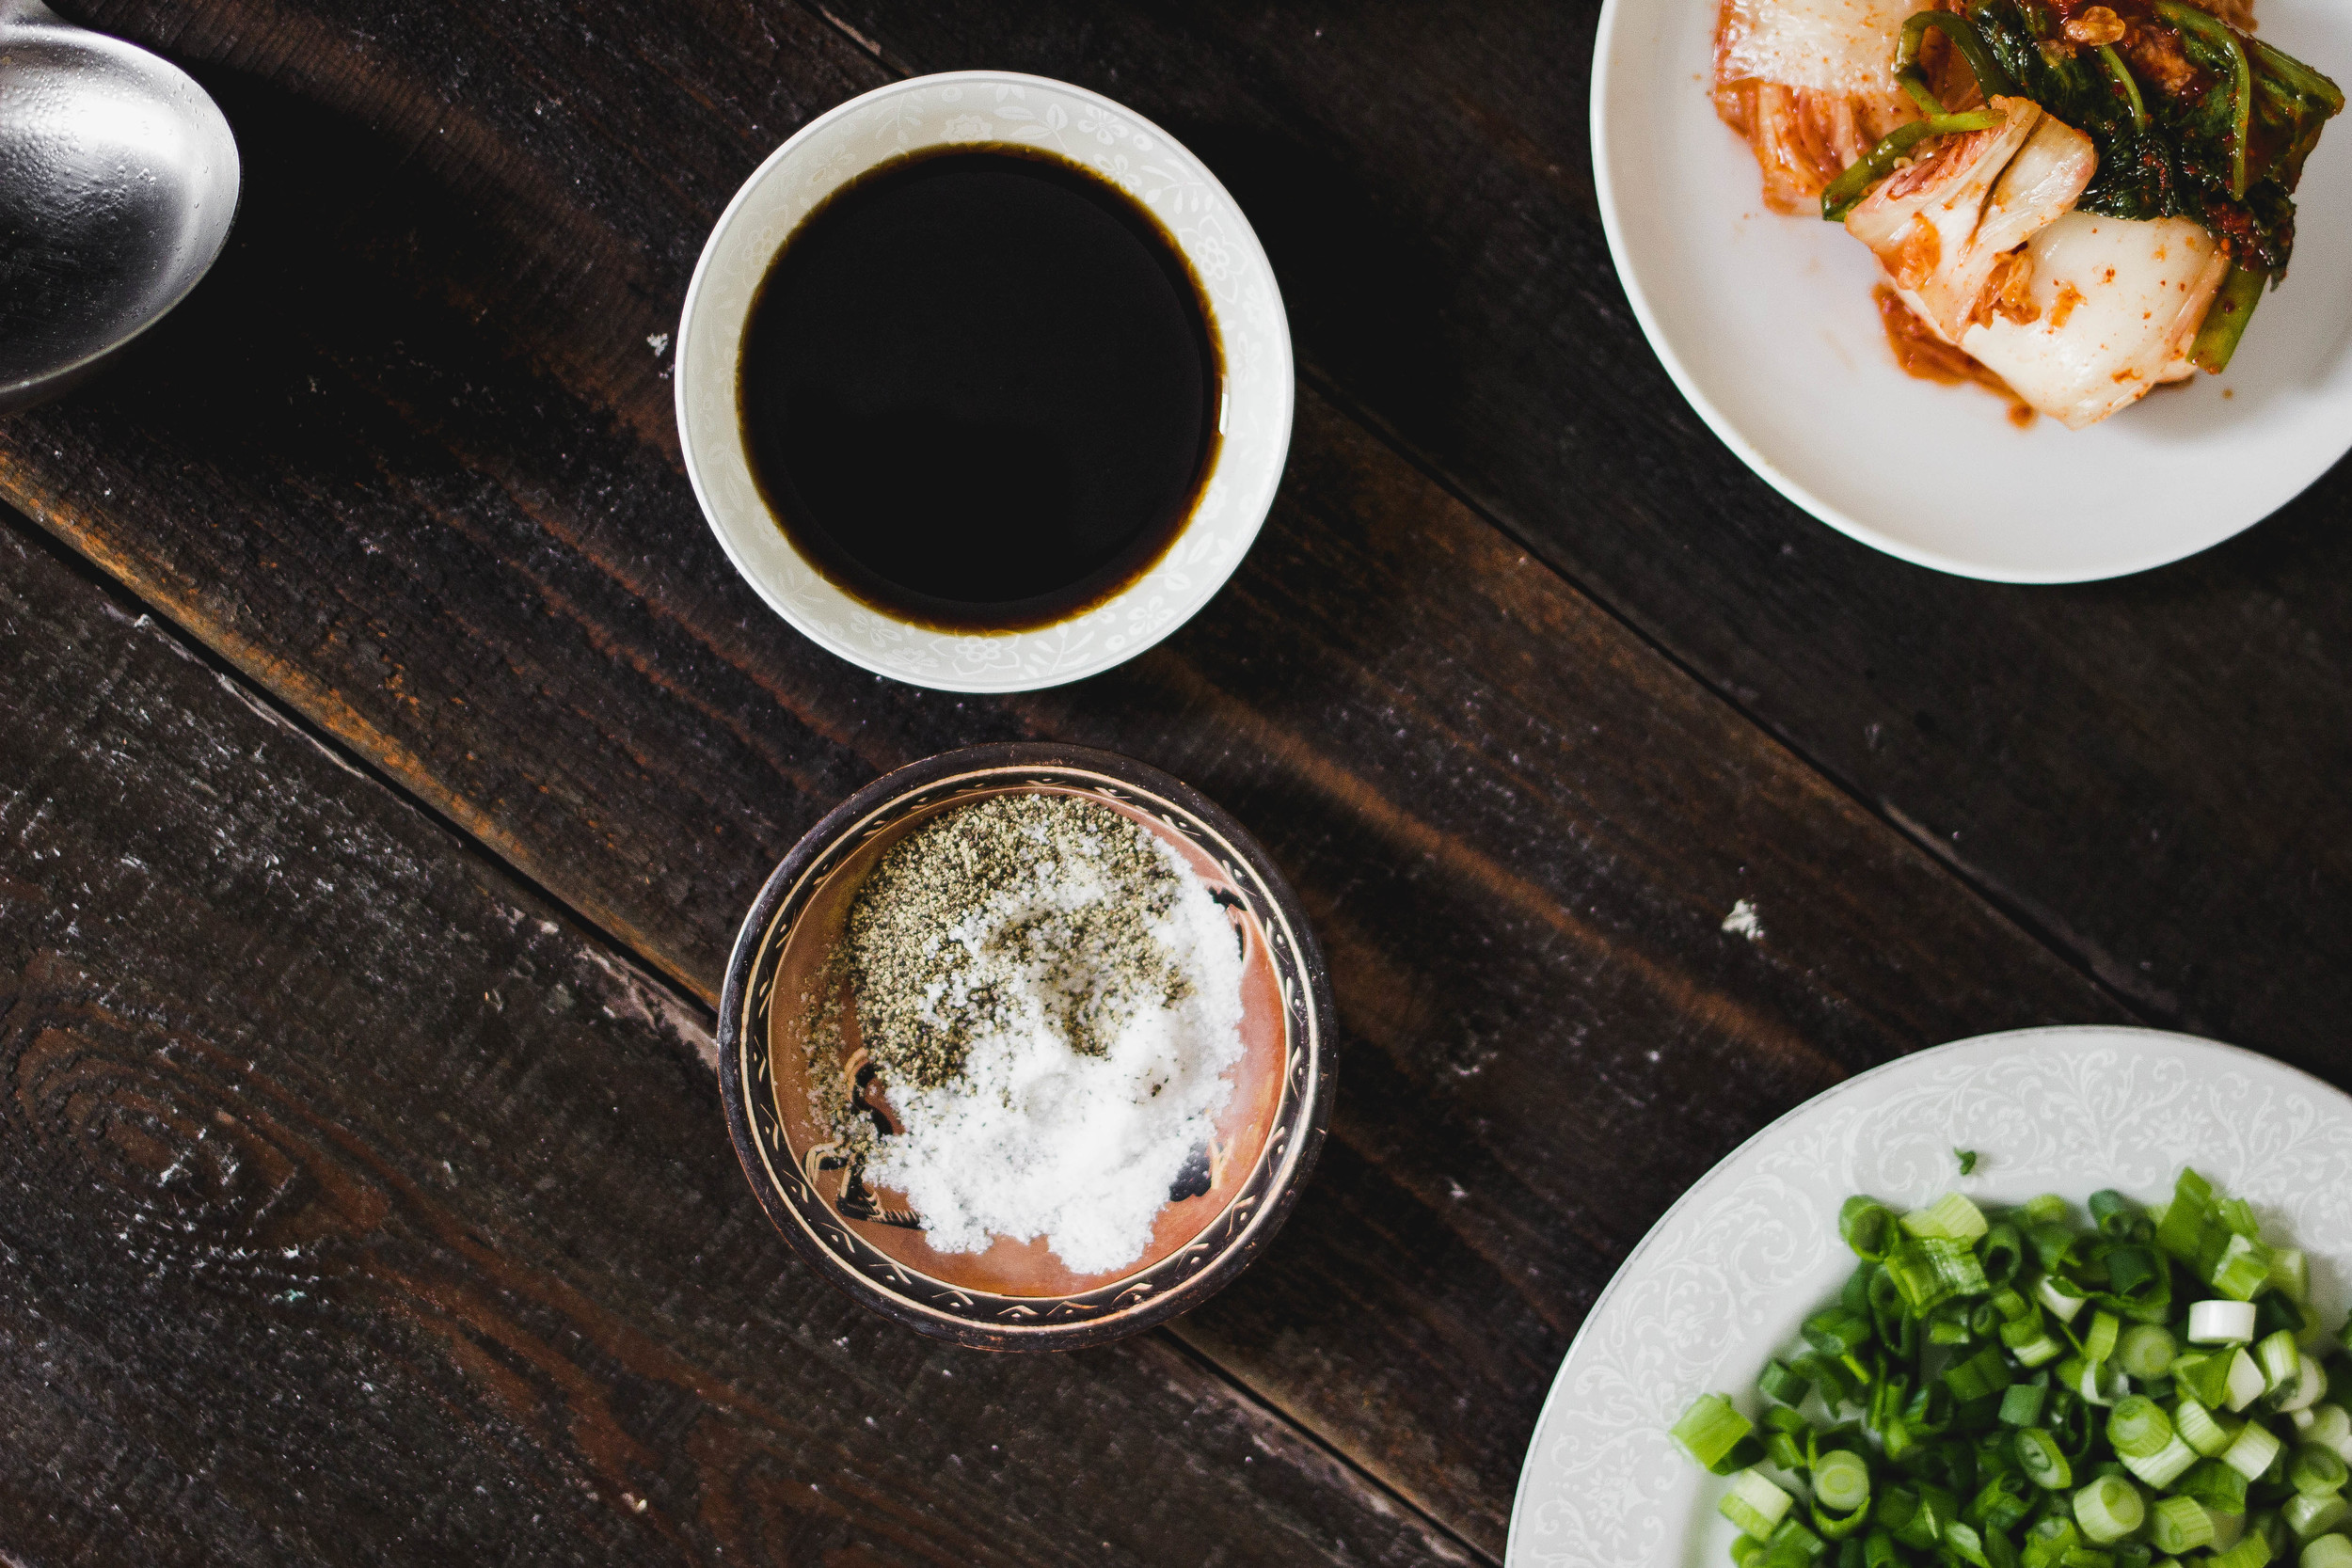 Korean Cho Ganjang-Vinegar soy sauce for dipping | by fit for the soul